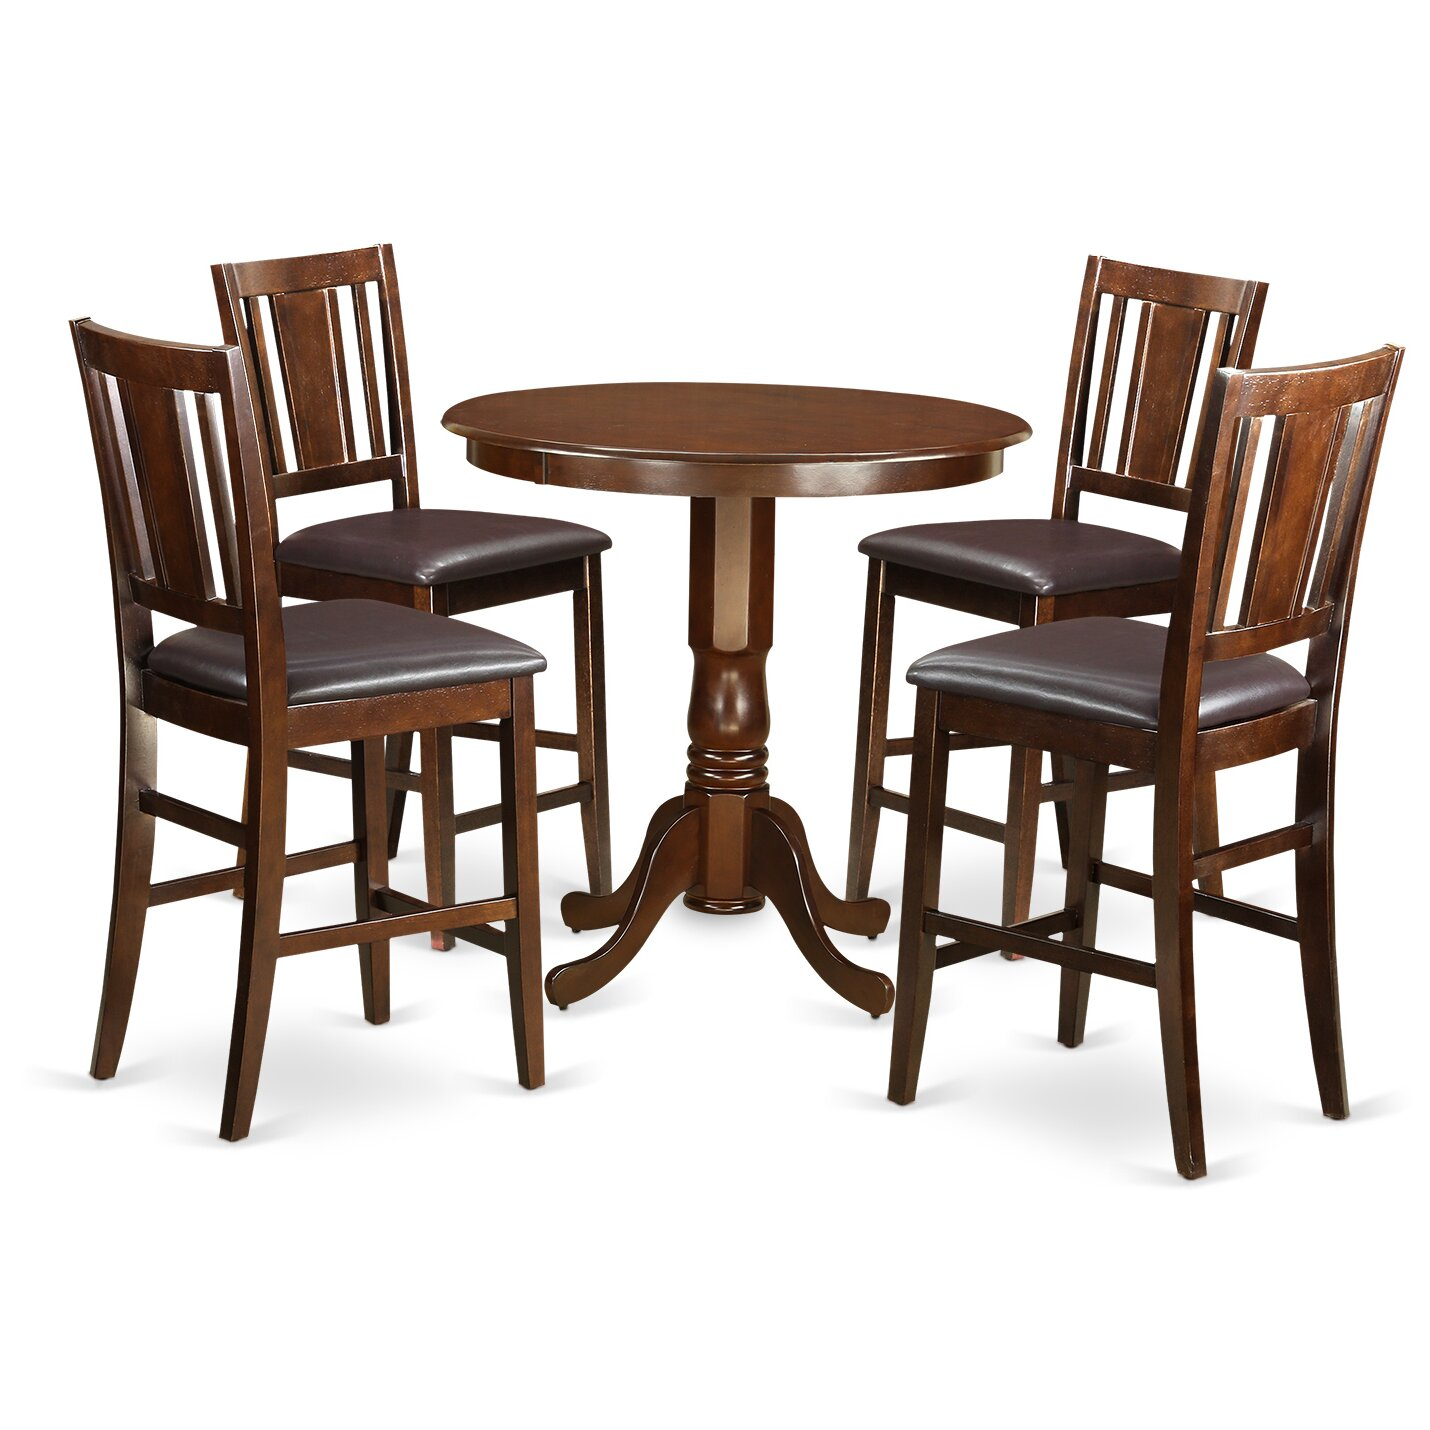 Wooden importers jackson 5 piece counter height pub table - Bar height pub table and chairs ...